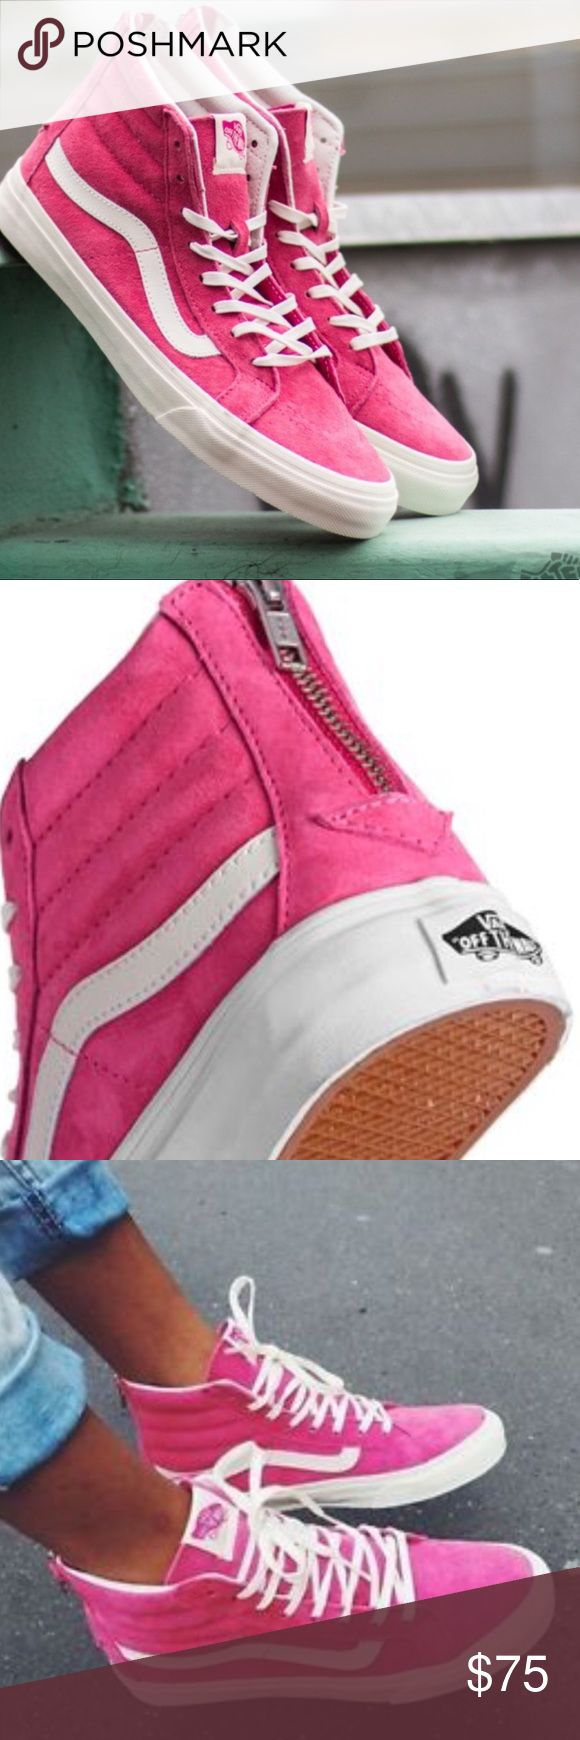 😘'SALE'😘SK8-HI SLIM ZIP HOT PINK SZ 8 Vans The Scotchgard Sk8-Hi Slim Zip combines a slimmed down version of the legendary lace-up high top with a zipper entry at the heel, Scotchgard®-treated uppers for superior durability, signature waffle rubber outsoles, and padded collar and heel counters for support and flexibility. Size 8 women. Vans Shoes Sneakers